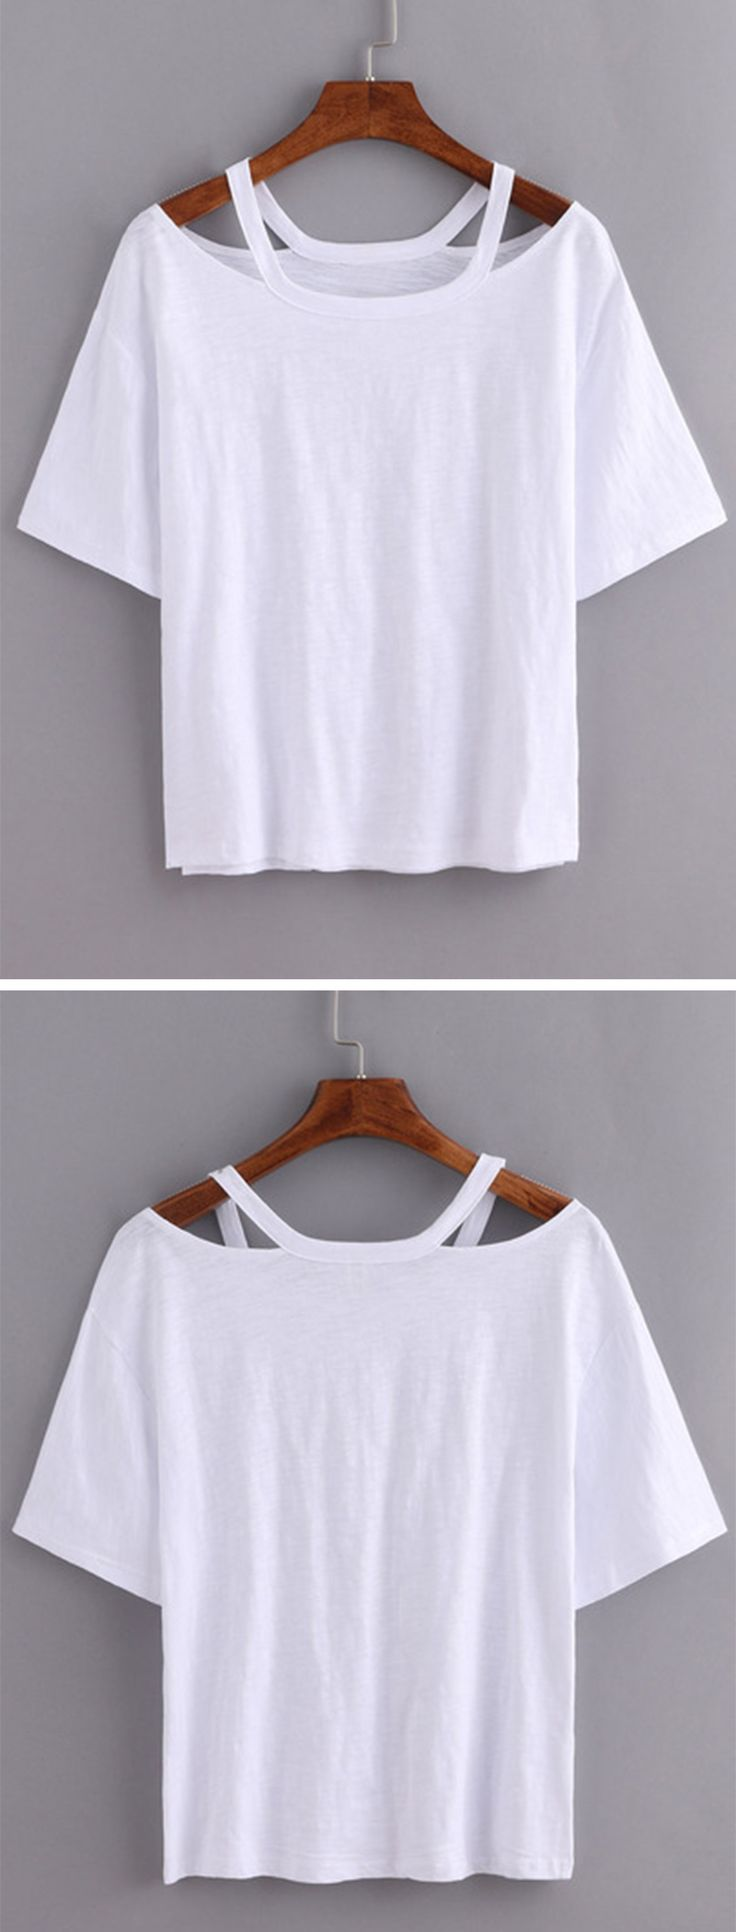 T Shirt Cutting Designs Ideas find this pin and more on diy tshirt cutting Cutout Loose Fit White T Shirt